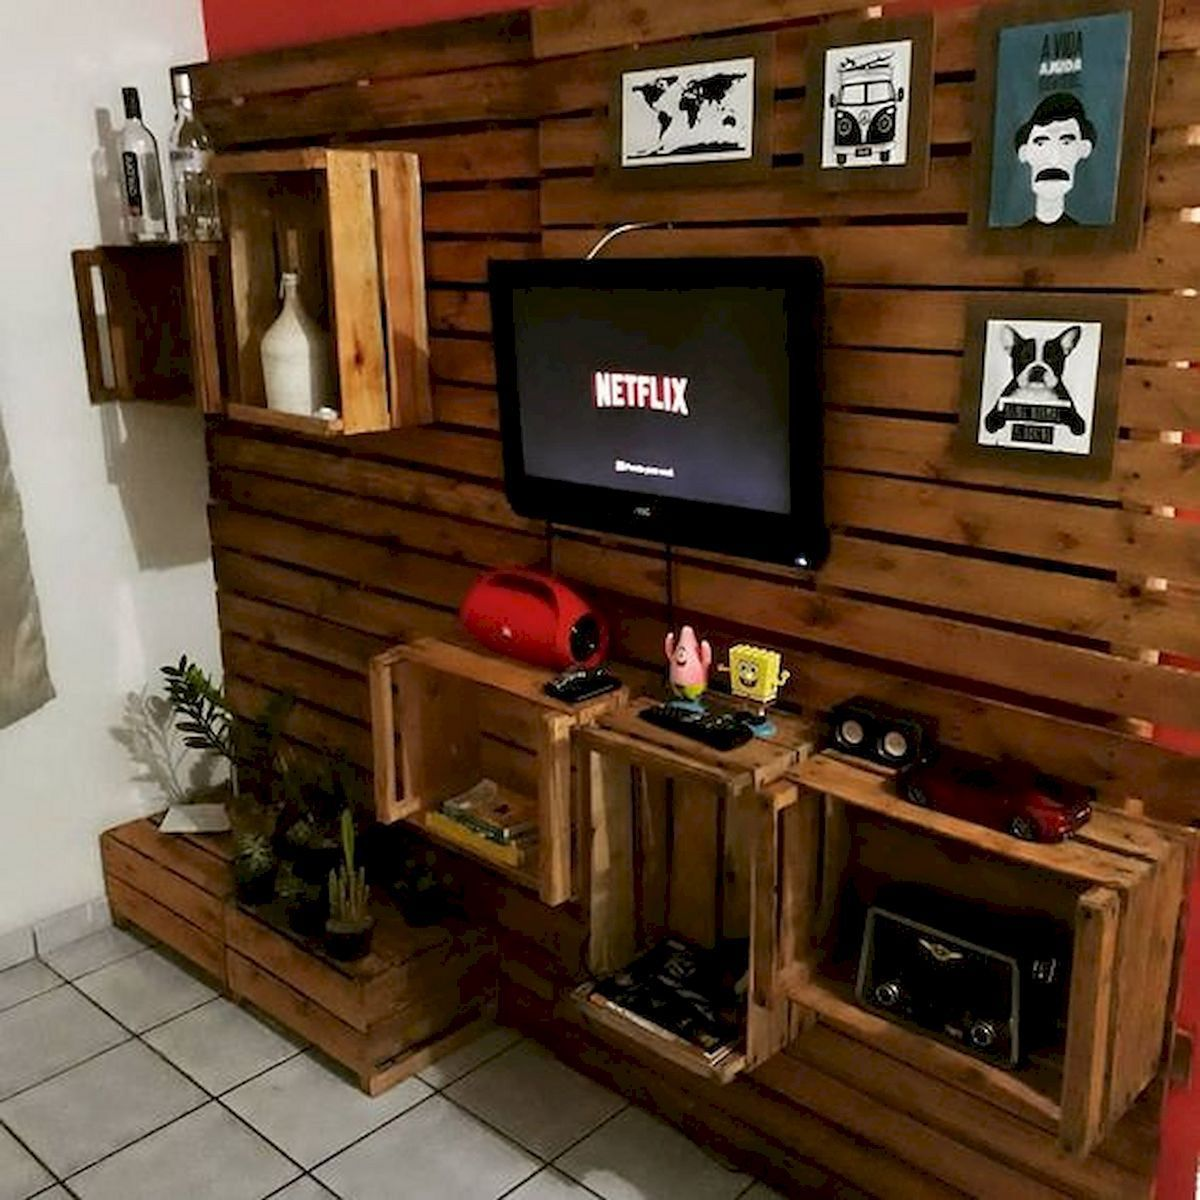 15 Best Wood Pallet Tv Ideas To Beautiful You Home Inspiration Wood Pallet Wall Wood Pallets Pallet Tv Simple disassembly room divider